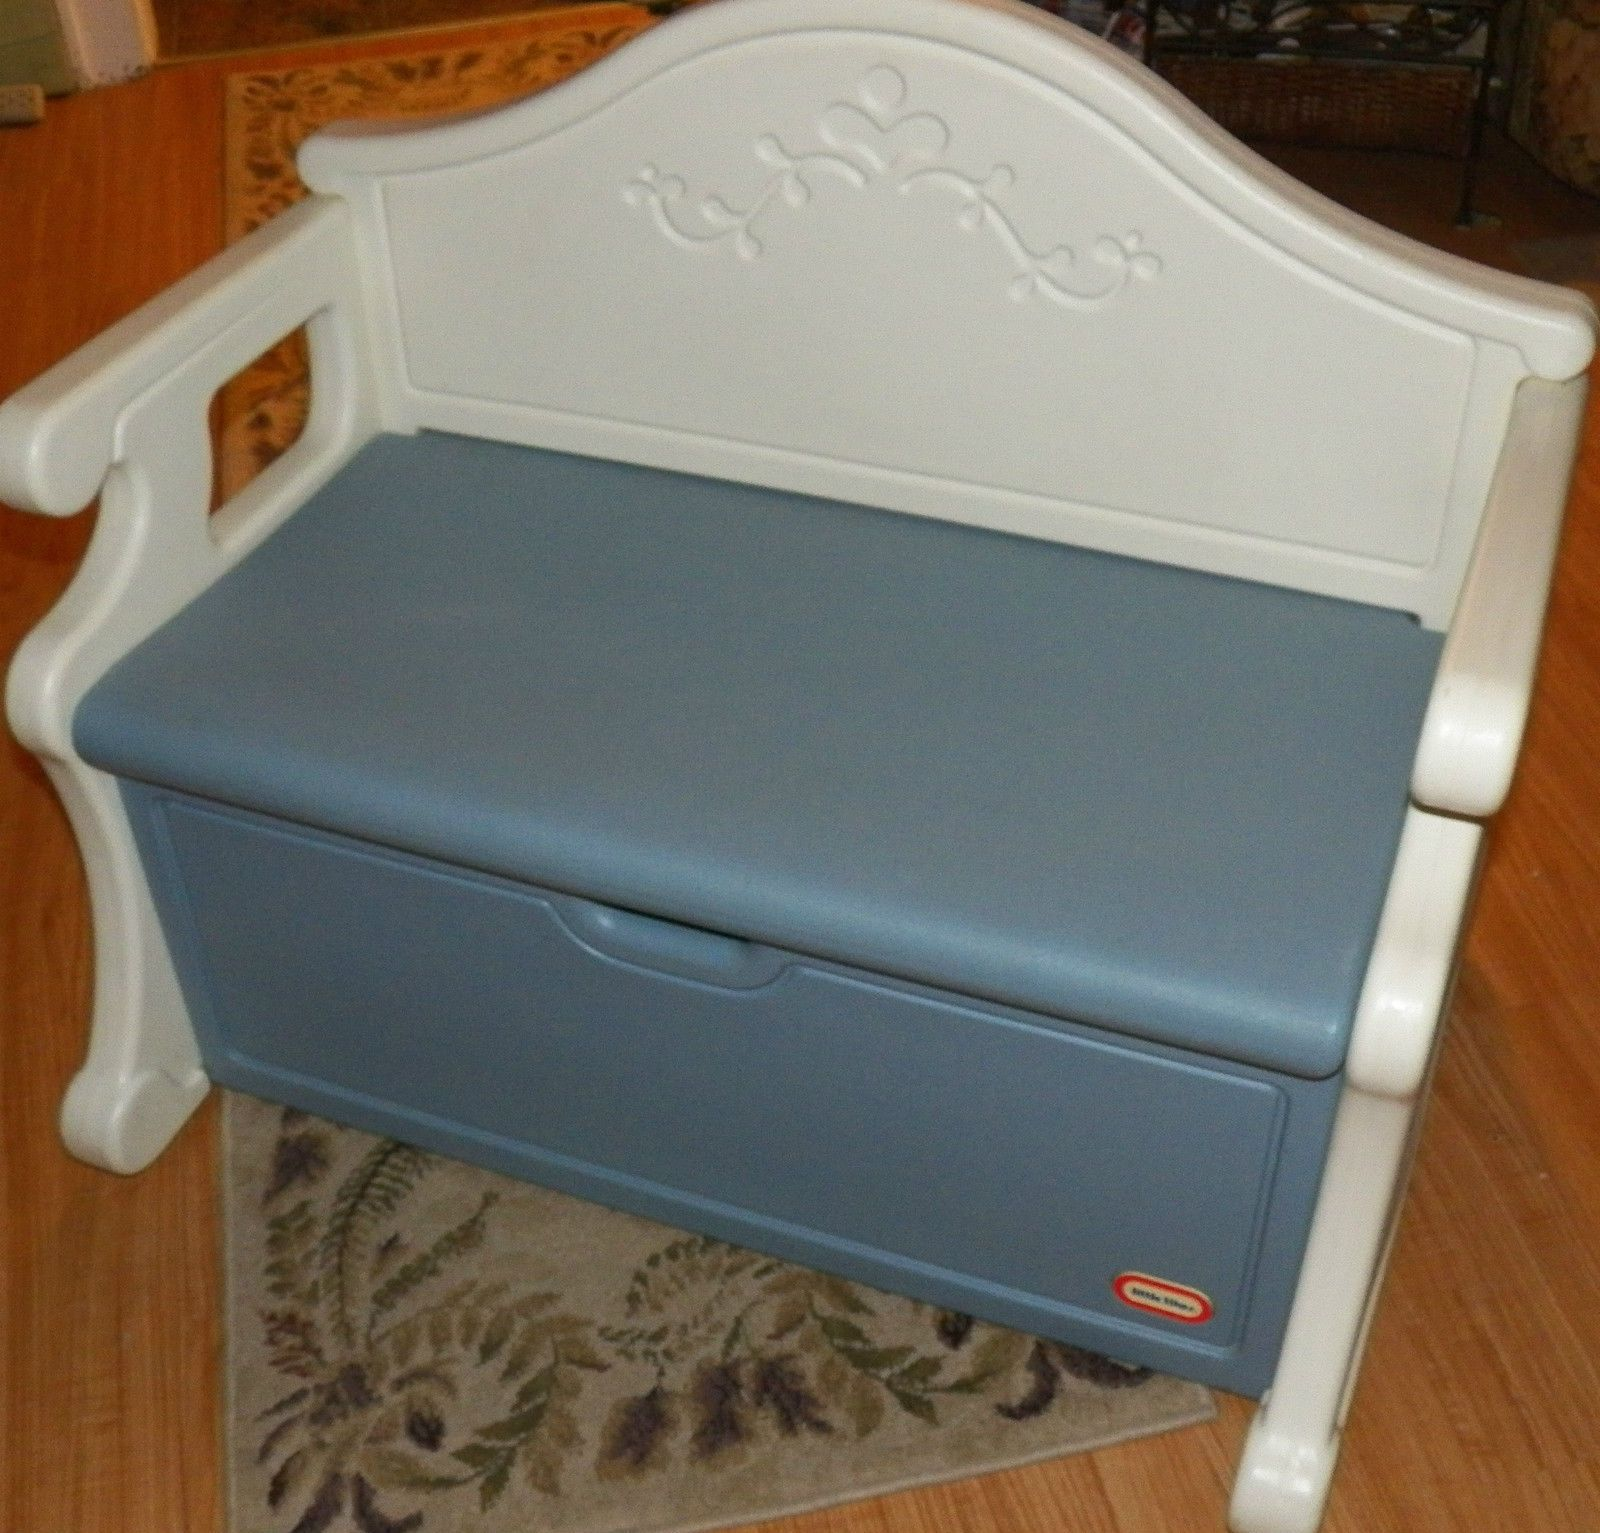 Astounding Little Tikes Bench Toy Box How Cute Will This Be When I Creativecarmelina Interior Chair Design Creativecarmelinacom